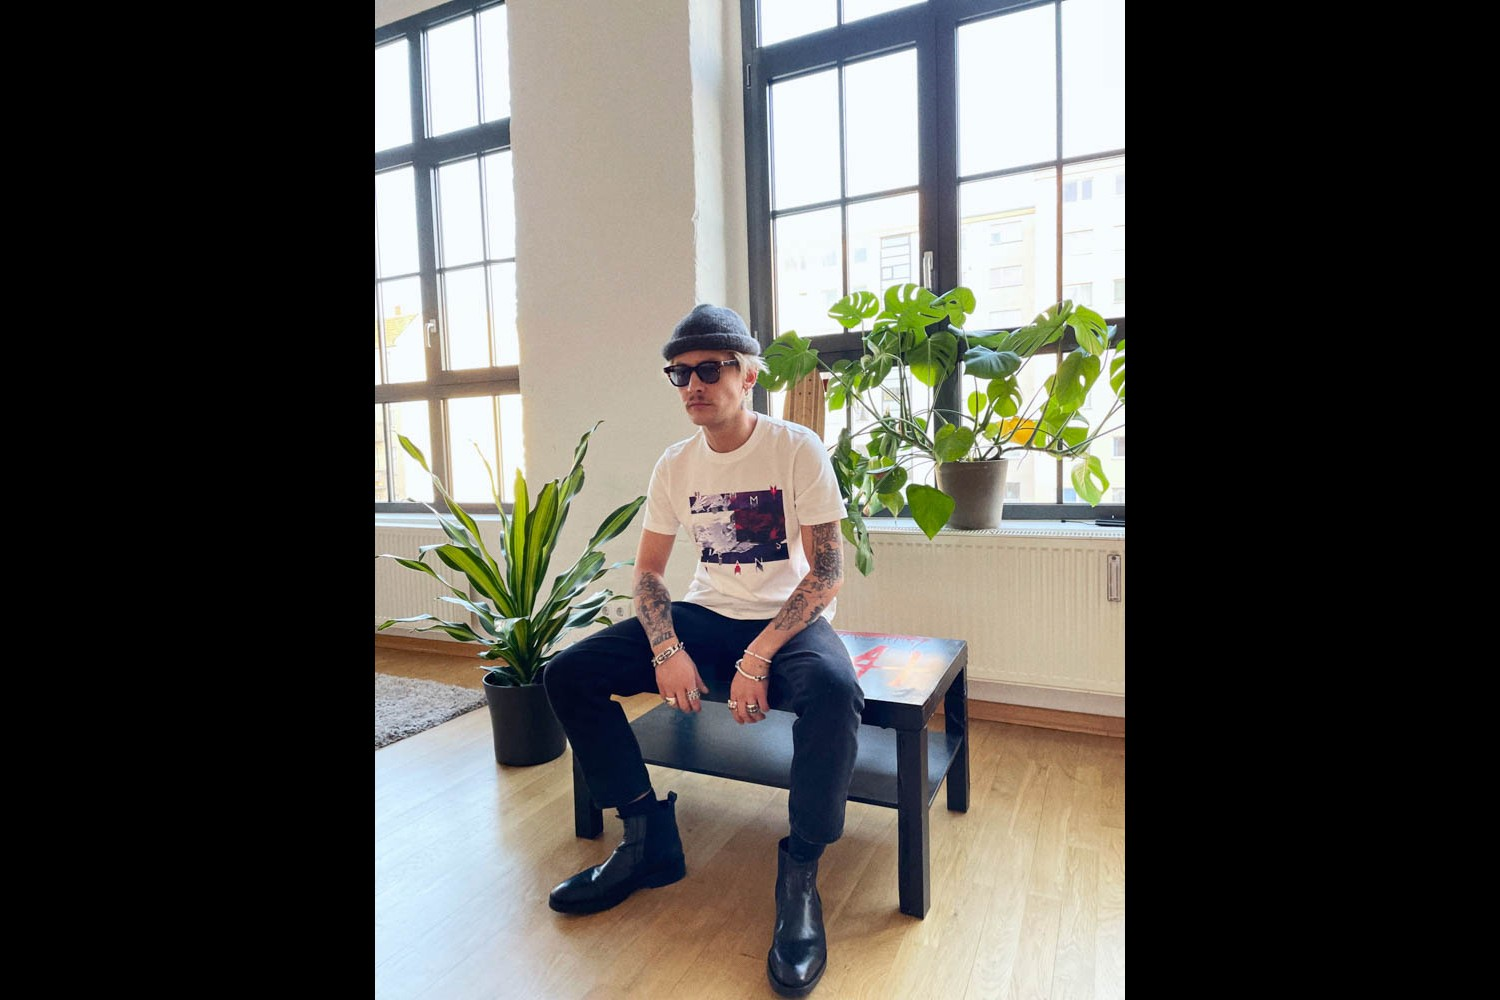 Tommy Hilfiger Presents Tommy's Drop Shop Collab Series Sportsbanger Mago Studio Zome Hoodie T-shirt